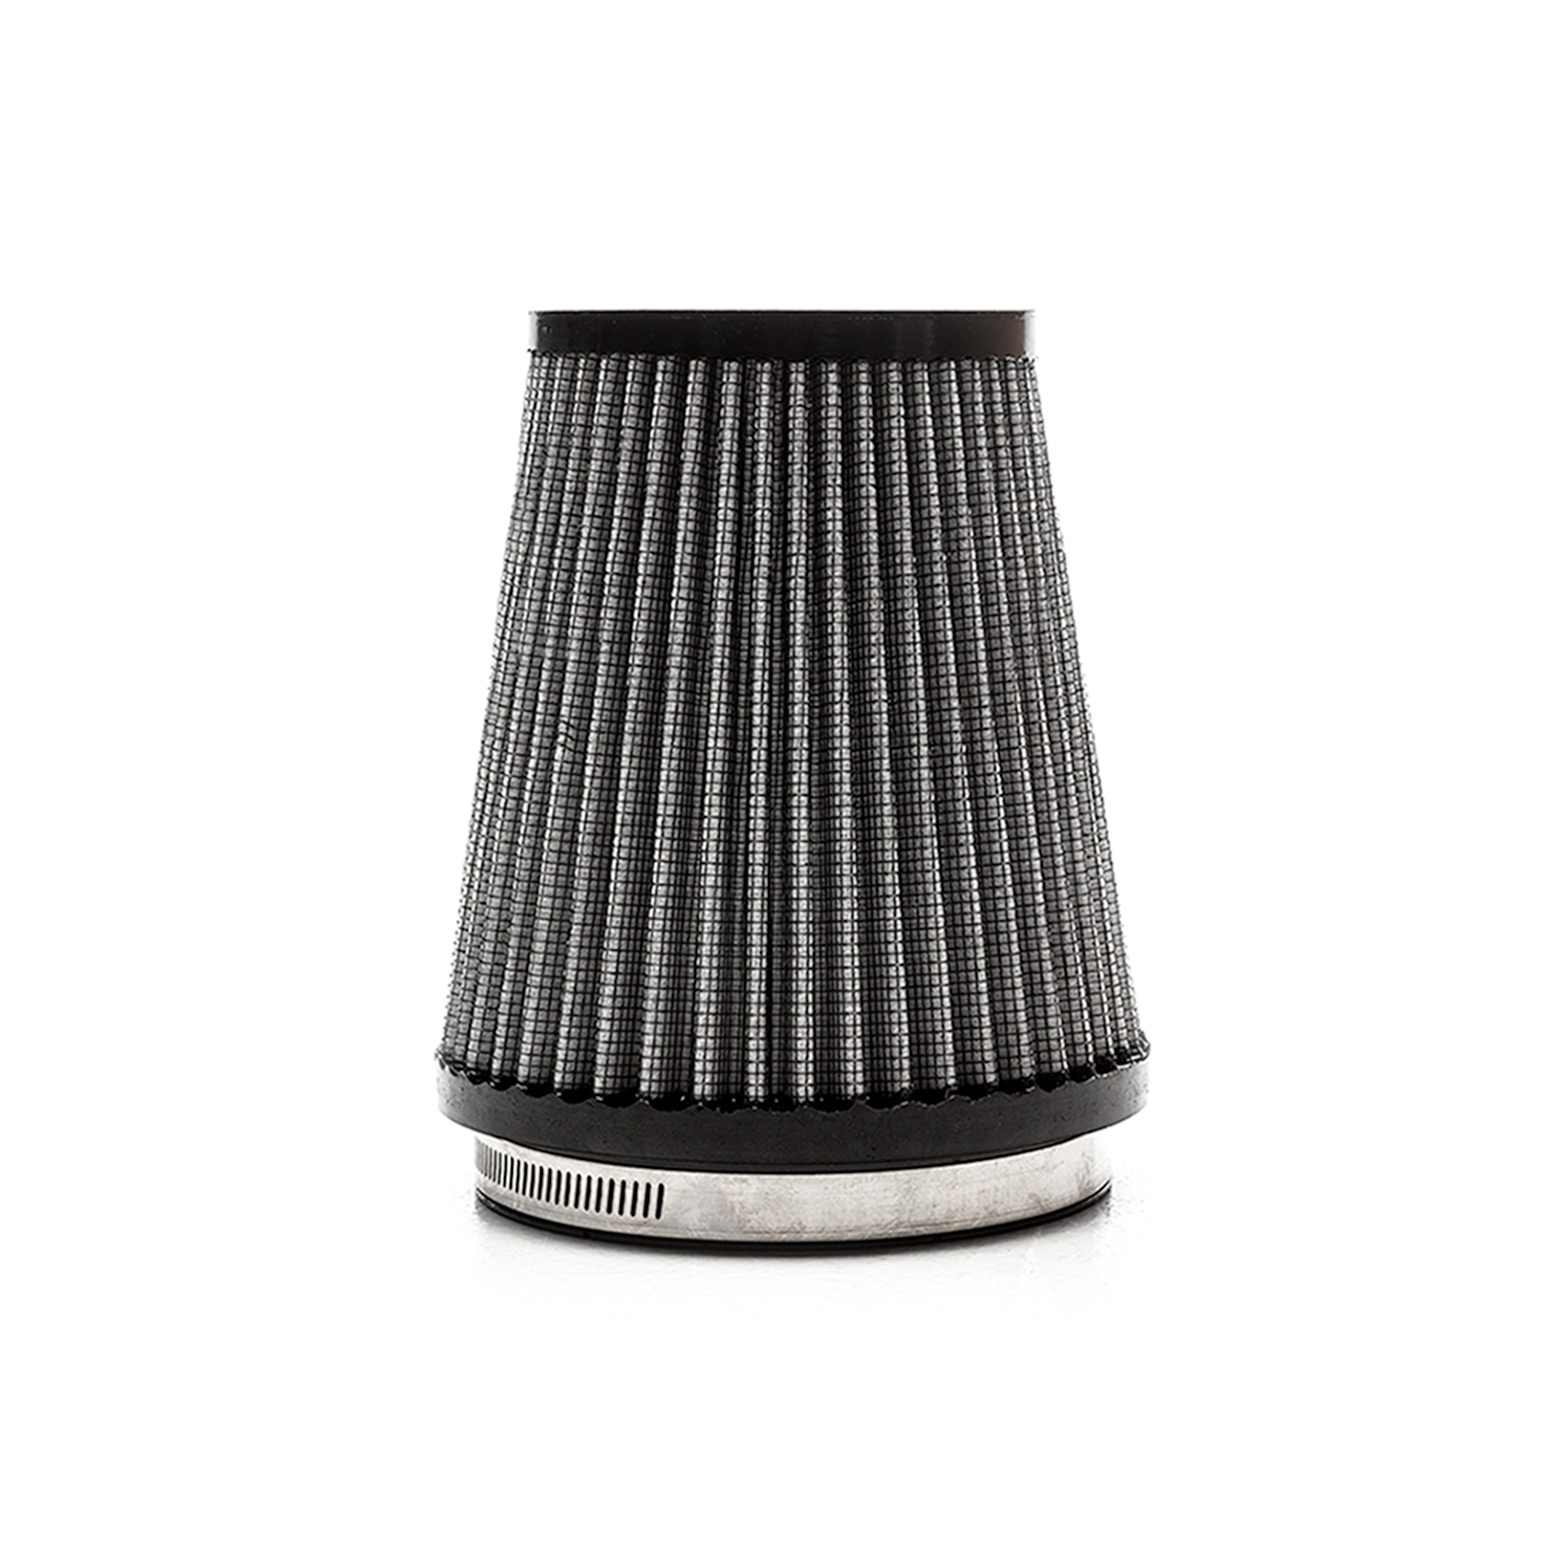 SF Intake Replacement Filter VW, Mazda, Mitsubishi